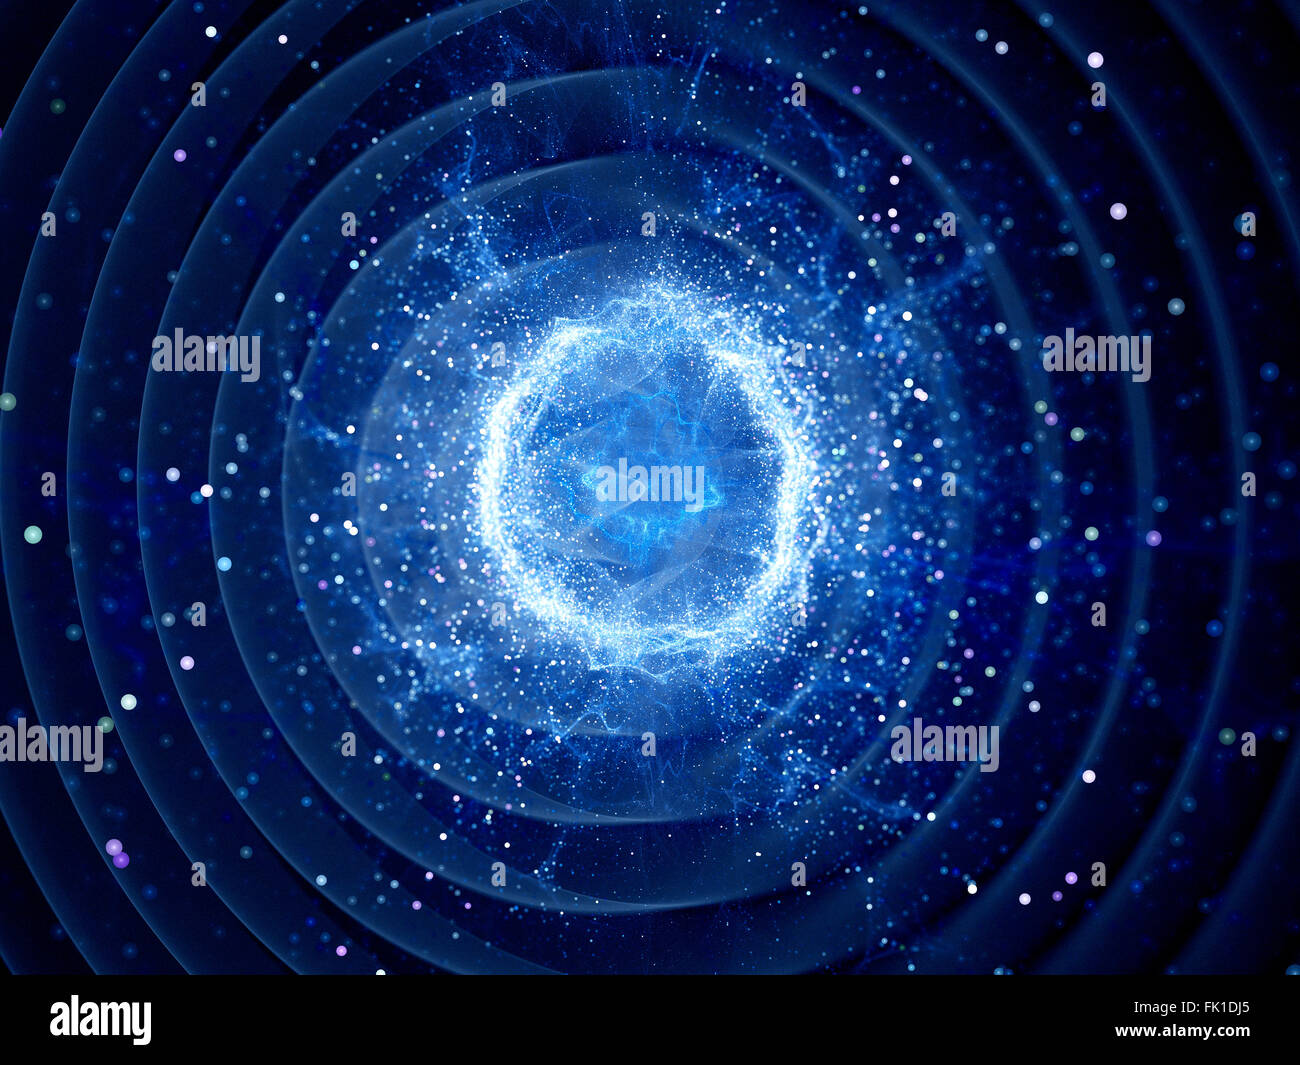 Gravitaional wave burst by strong force field, computer generated abstract background - Stock Image